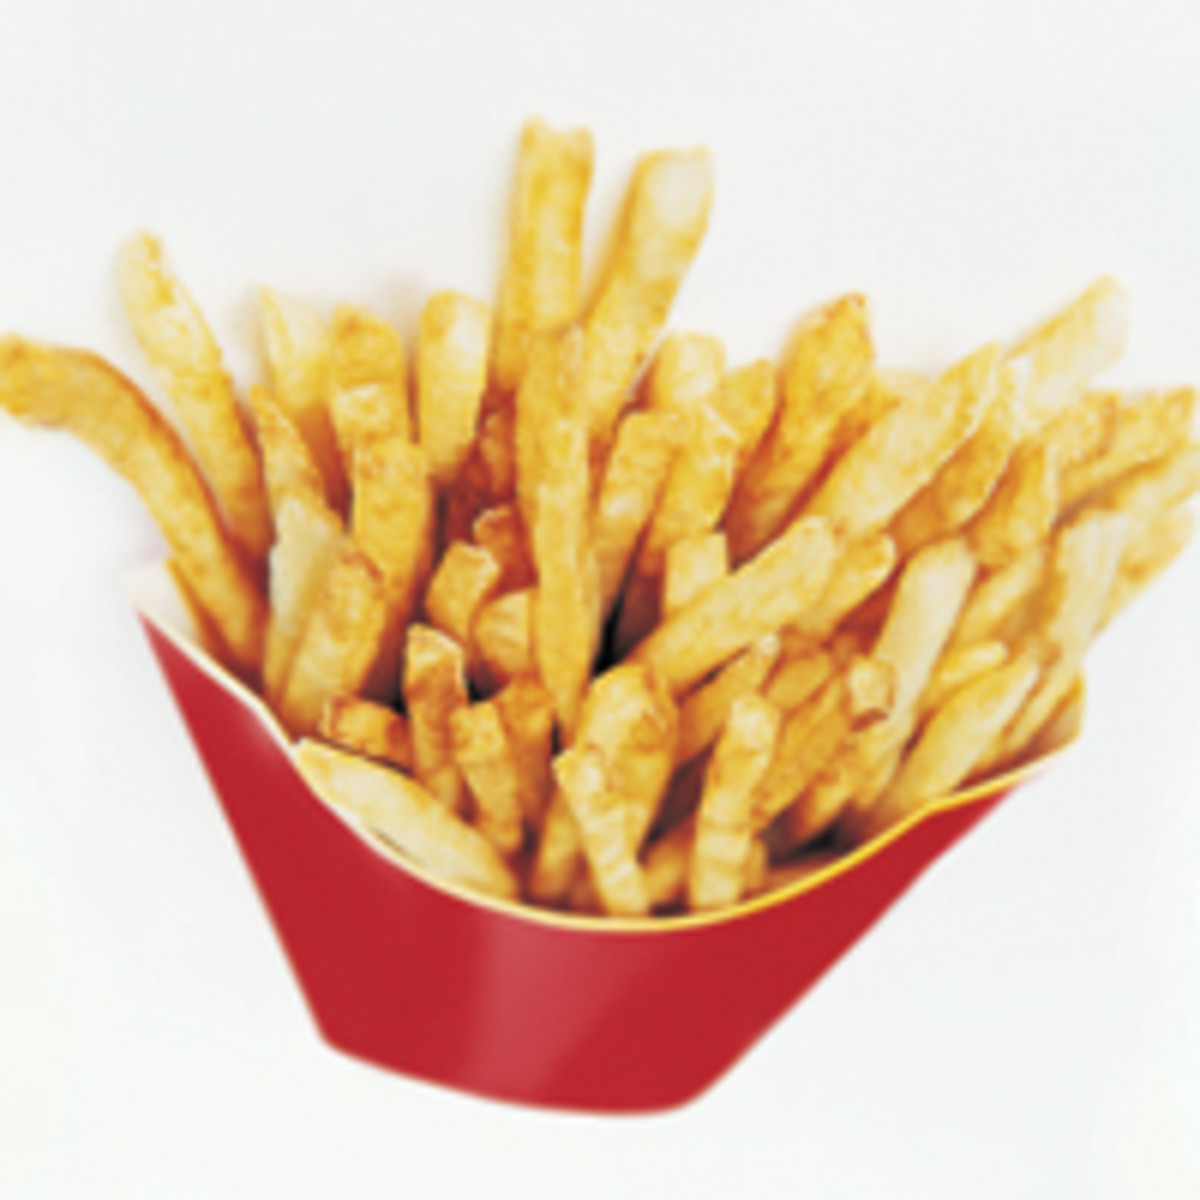 Generic French fries